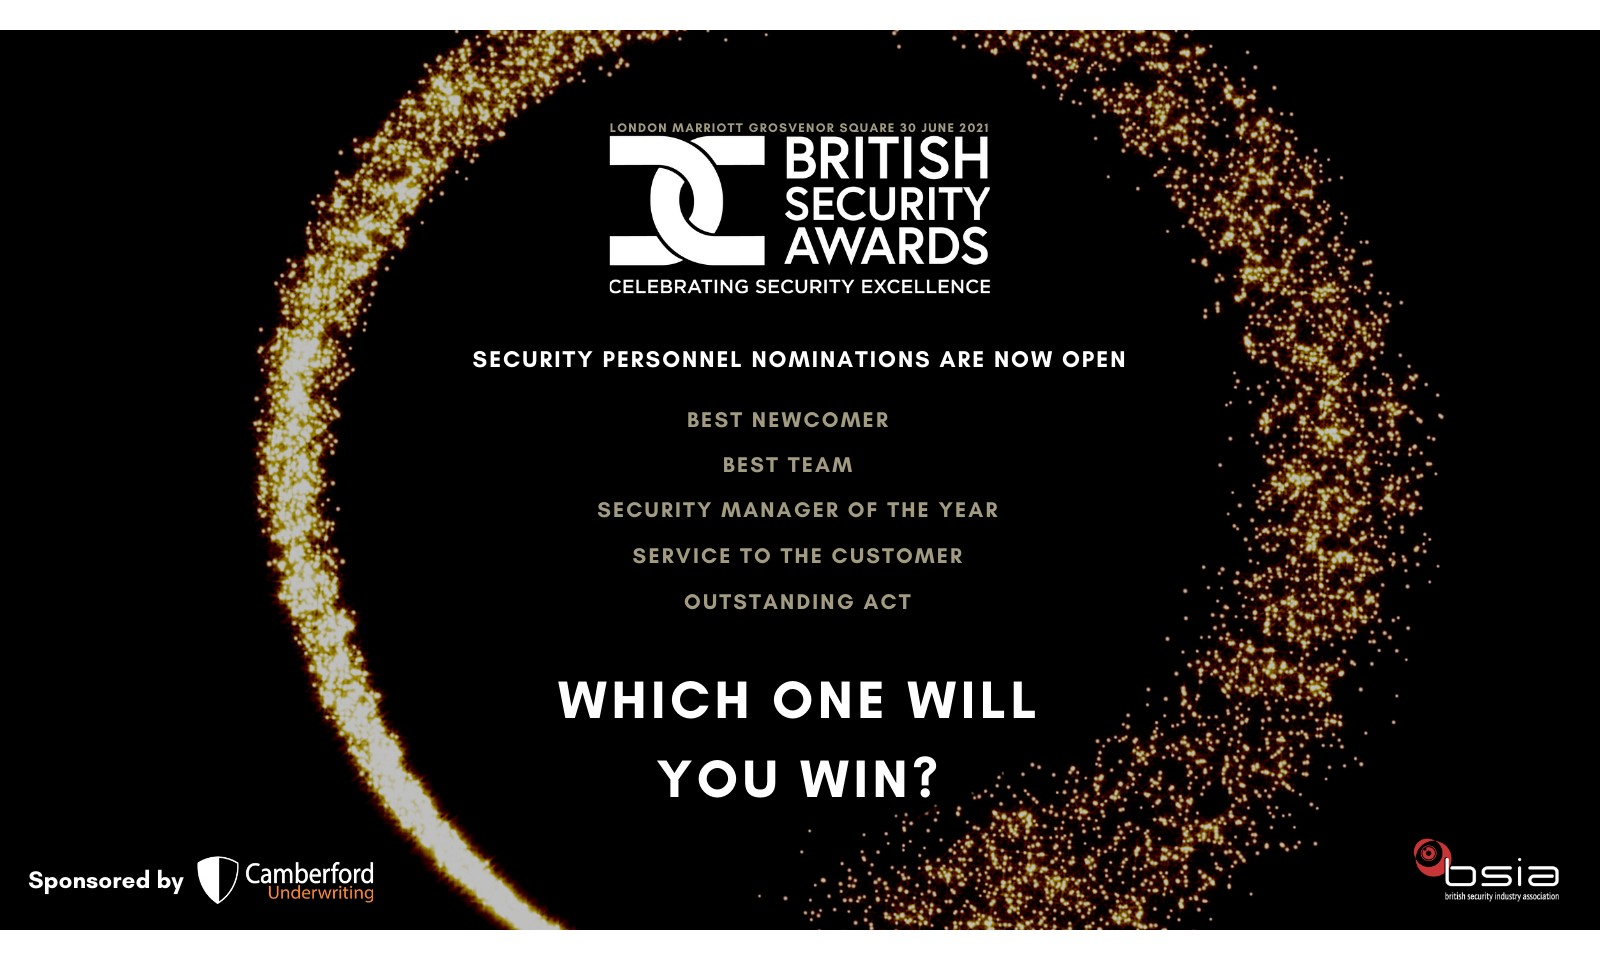 BSIA launch regional security personnel rounds of British Security Awards